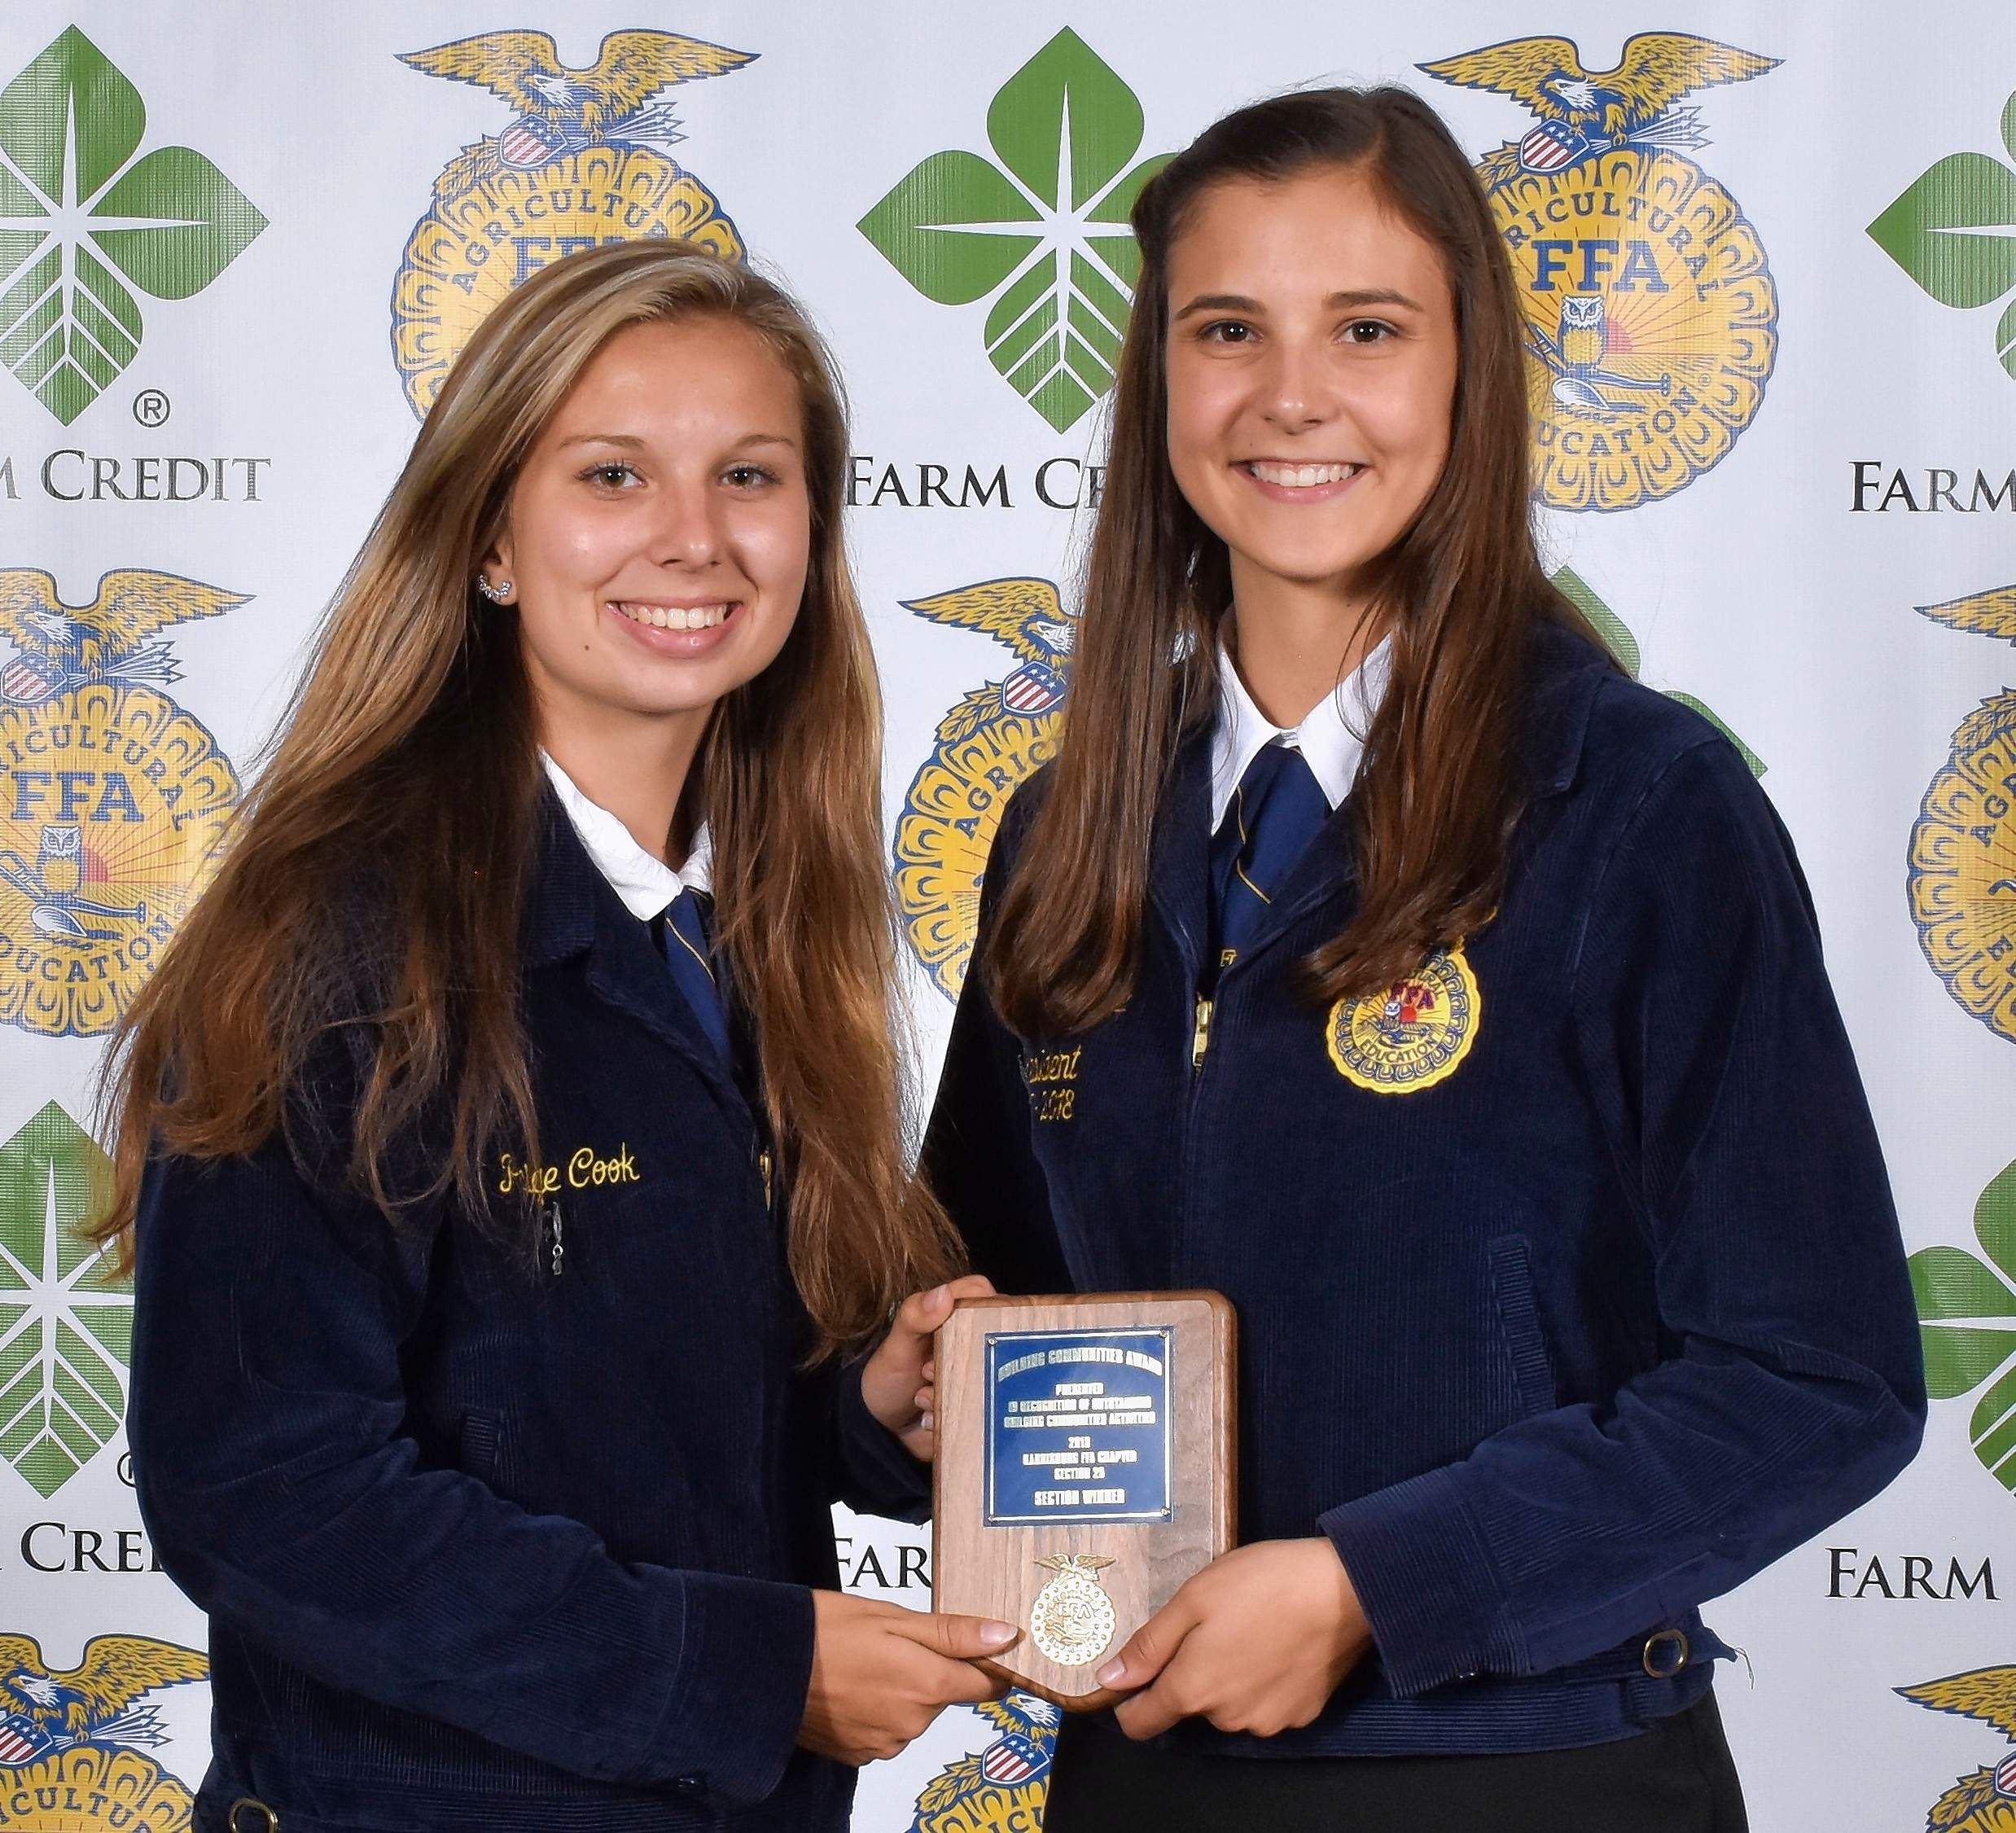 Paige Cook, left, and Bridget Payne with the Building Communities National Chapter Section Award. As part of the National Chapter Award program and the chapter's program of activities, Building Communities is designed to encourage the local development of FFA partnerships with alumni affiliates and other organizations while taking a leadership role in making the community a better place to live and work.